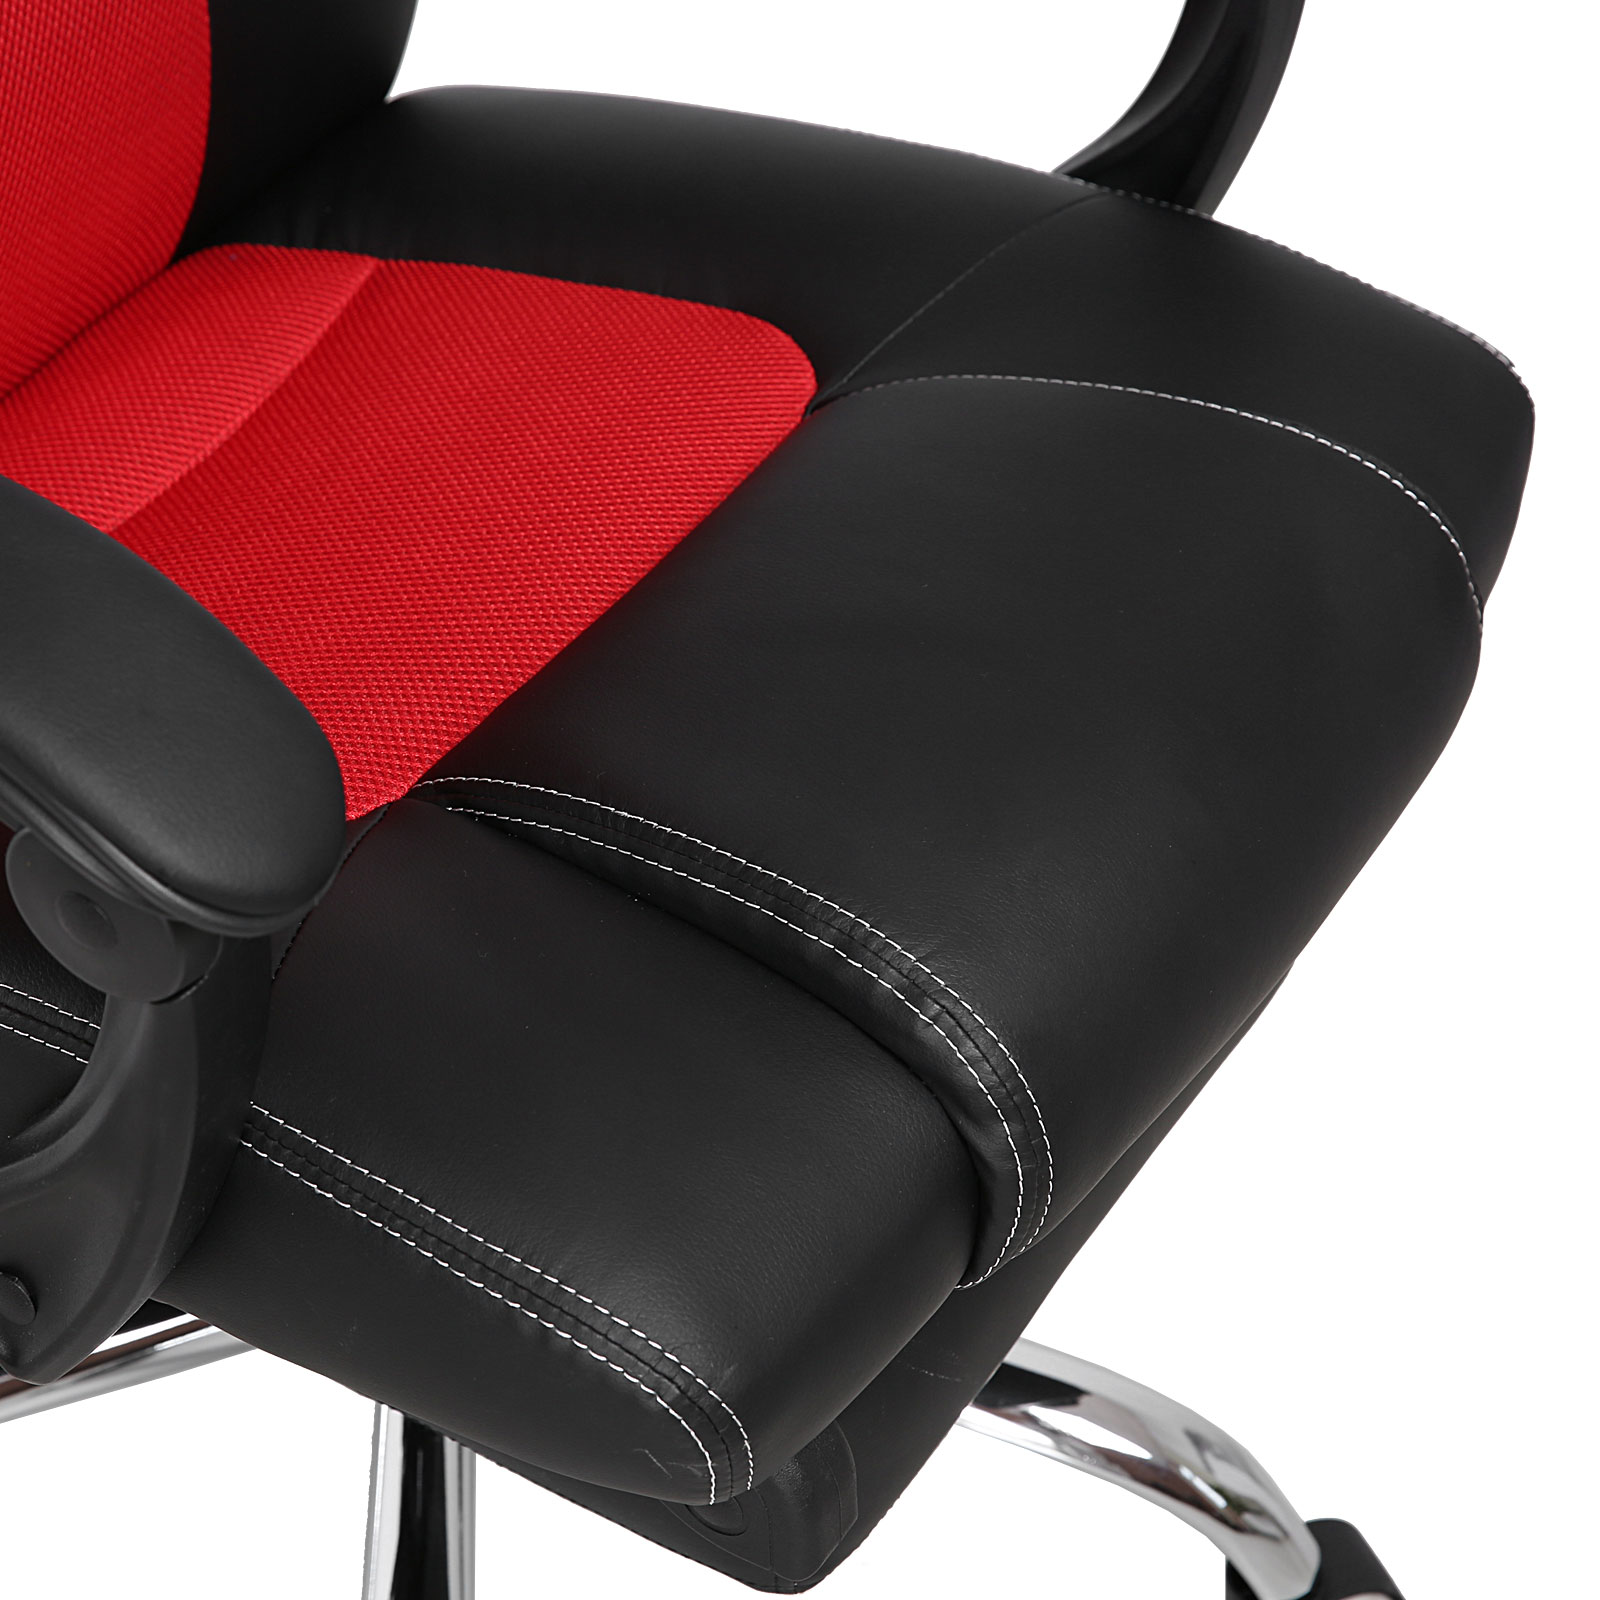 racing office chair high back gaming car style executive reclining bucket seat ebay. Black Bedroom Furniture Sets. Home Design Ideas